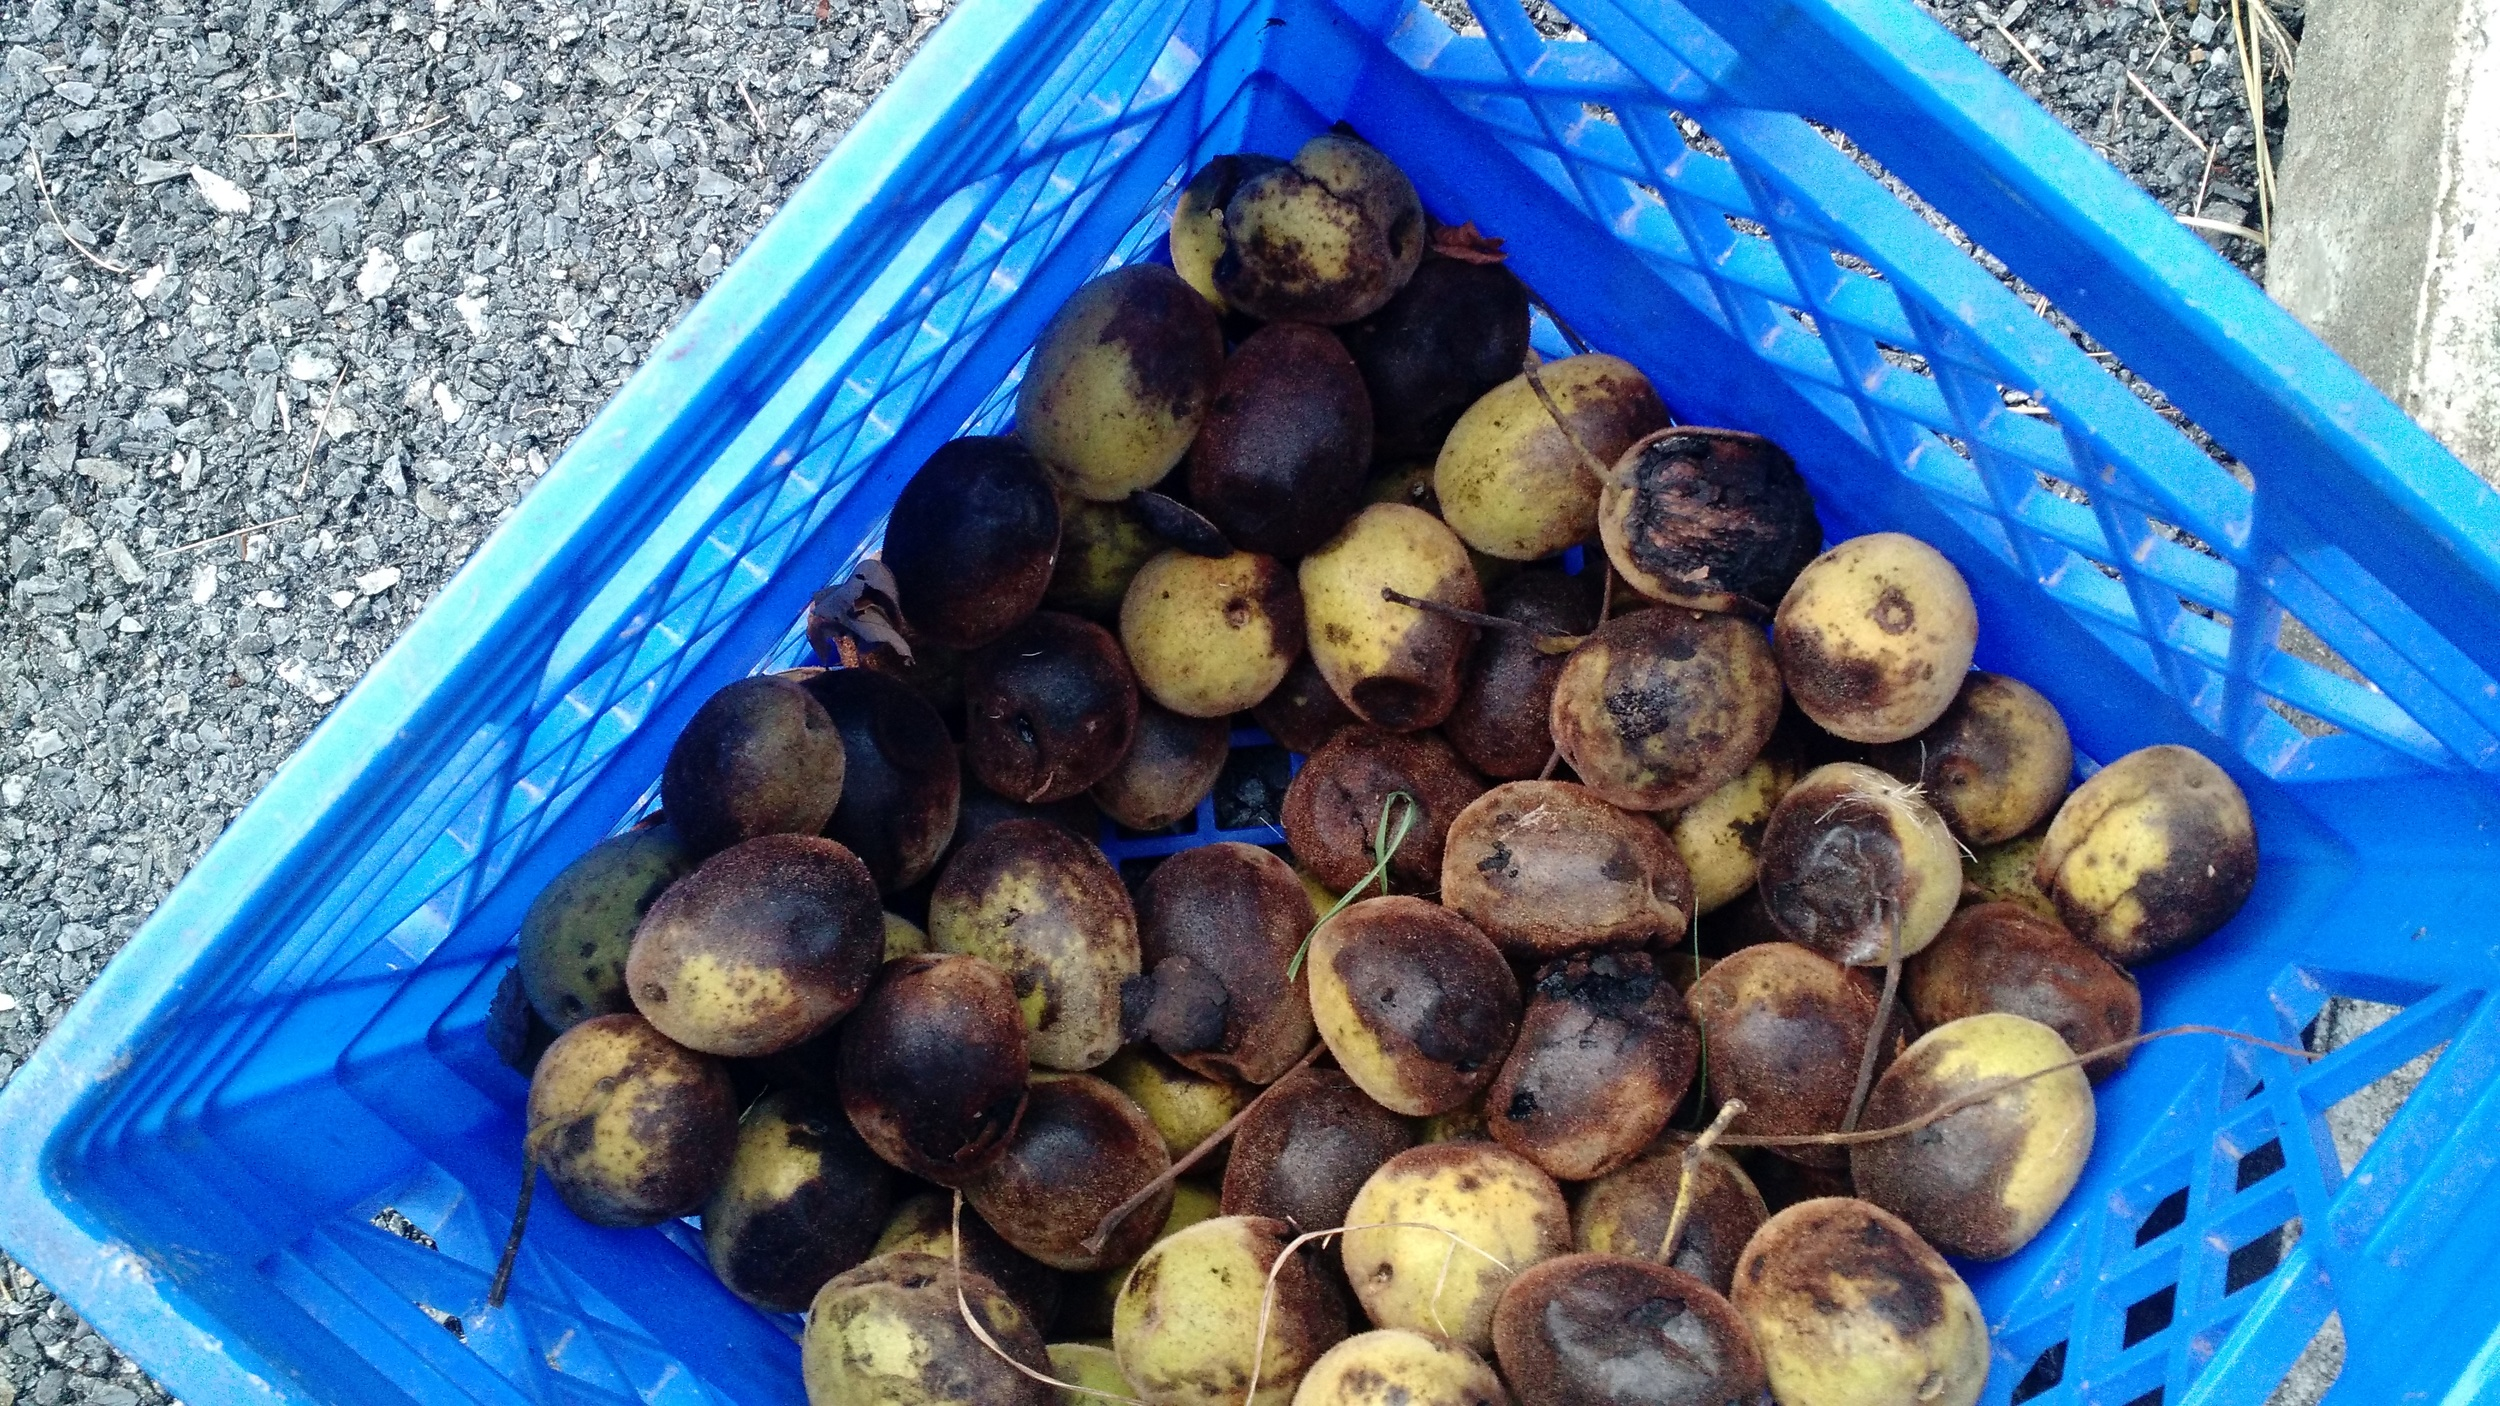 Harvested nuts